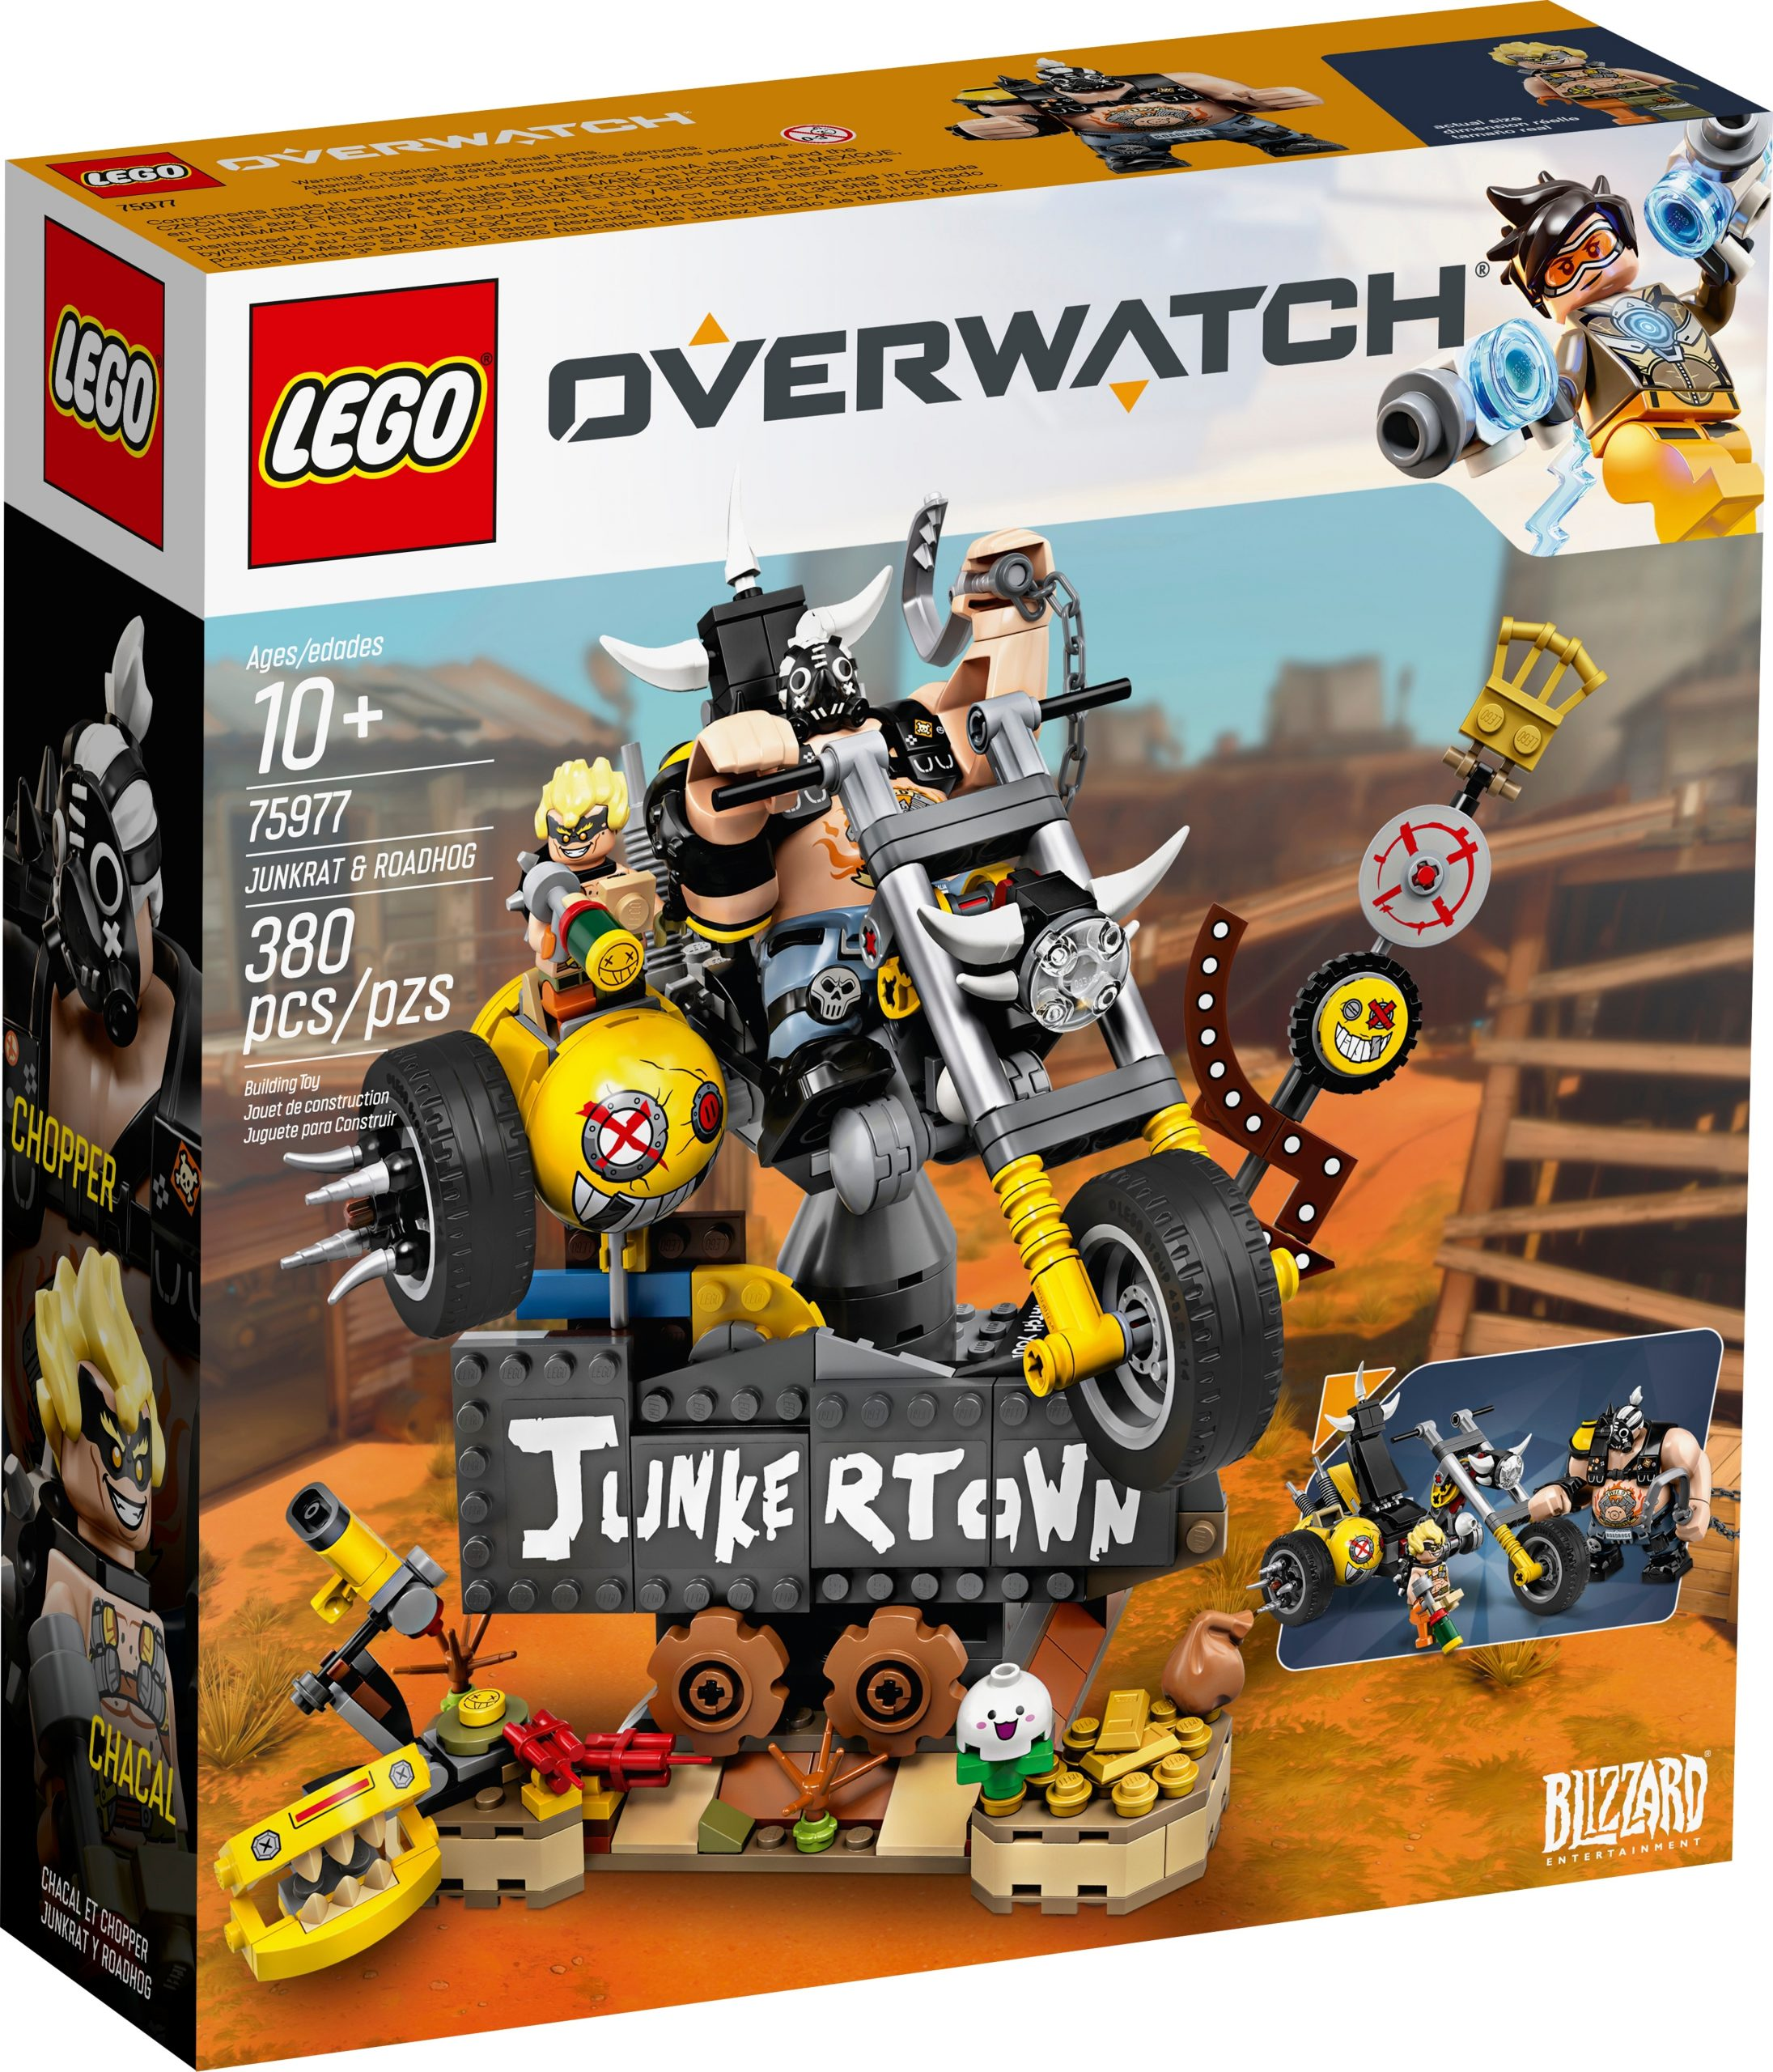 lego 75977 junkrat roadhog scaled